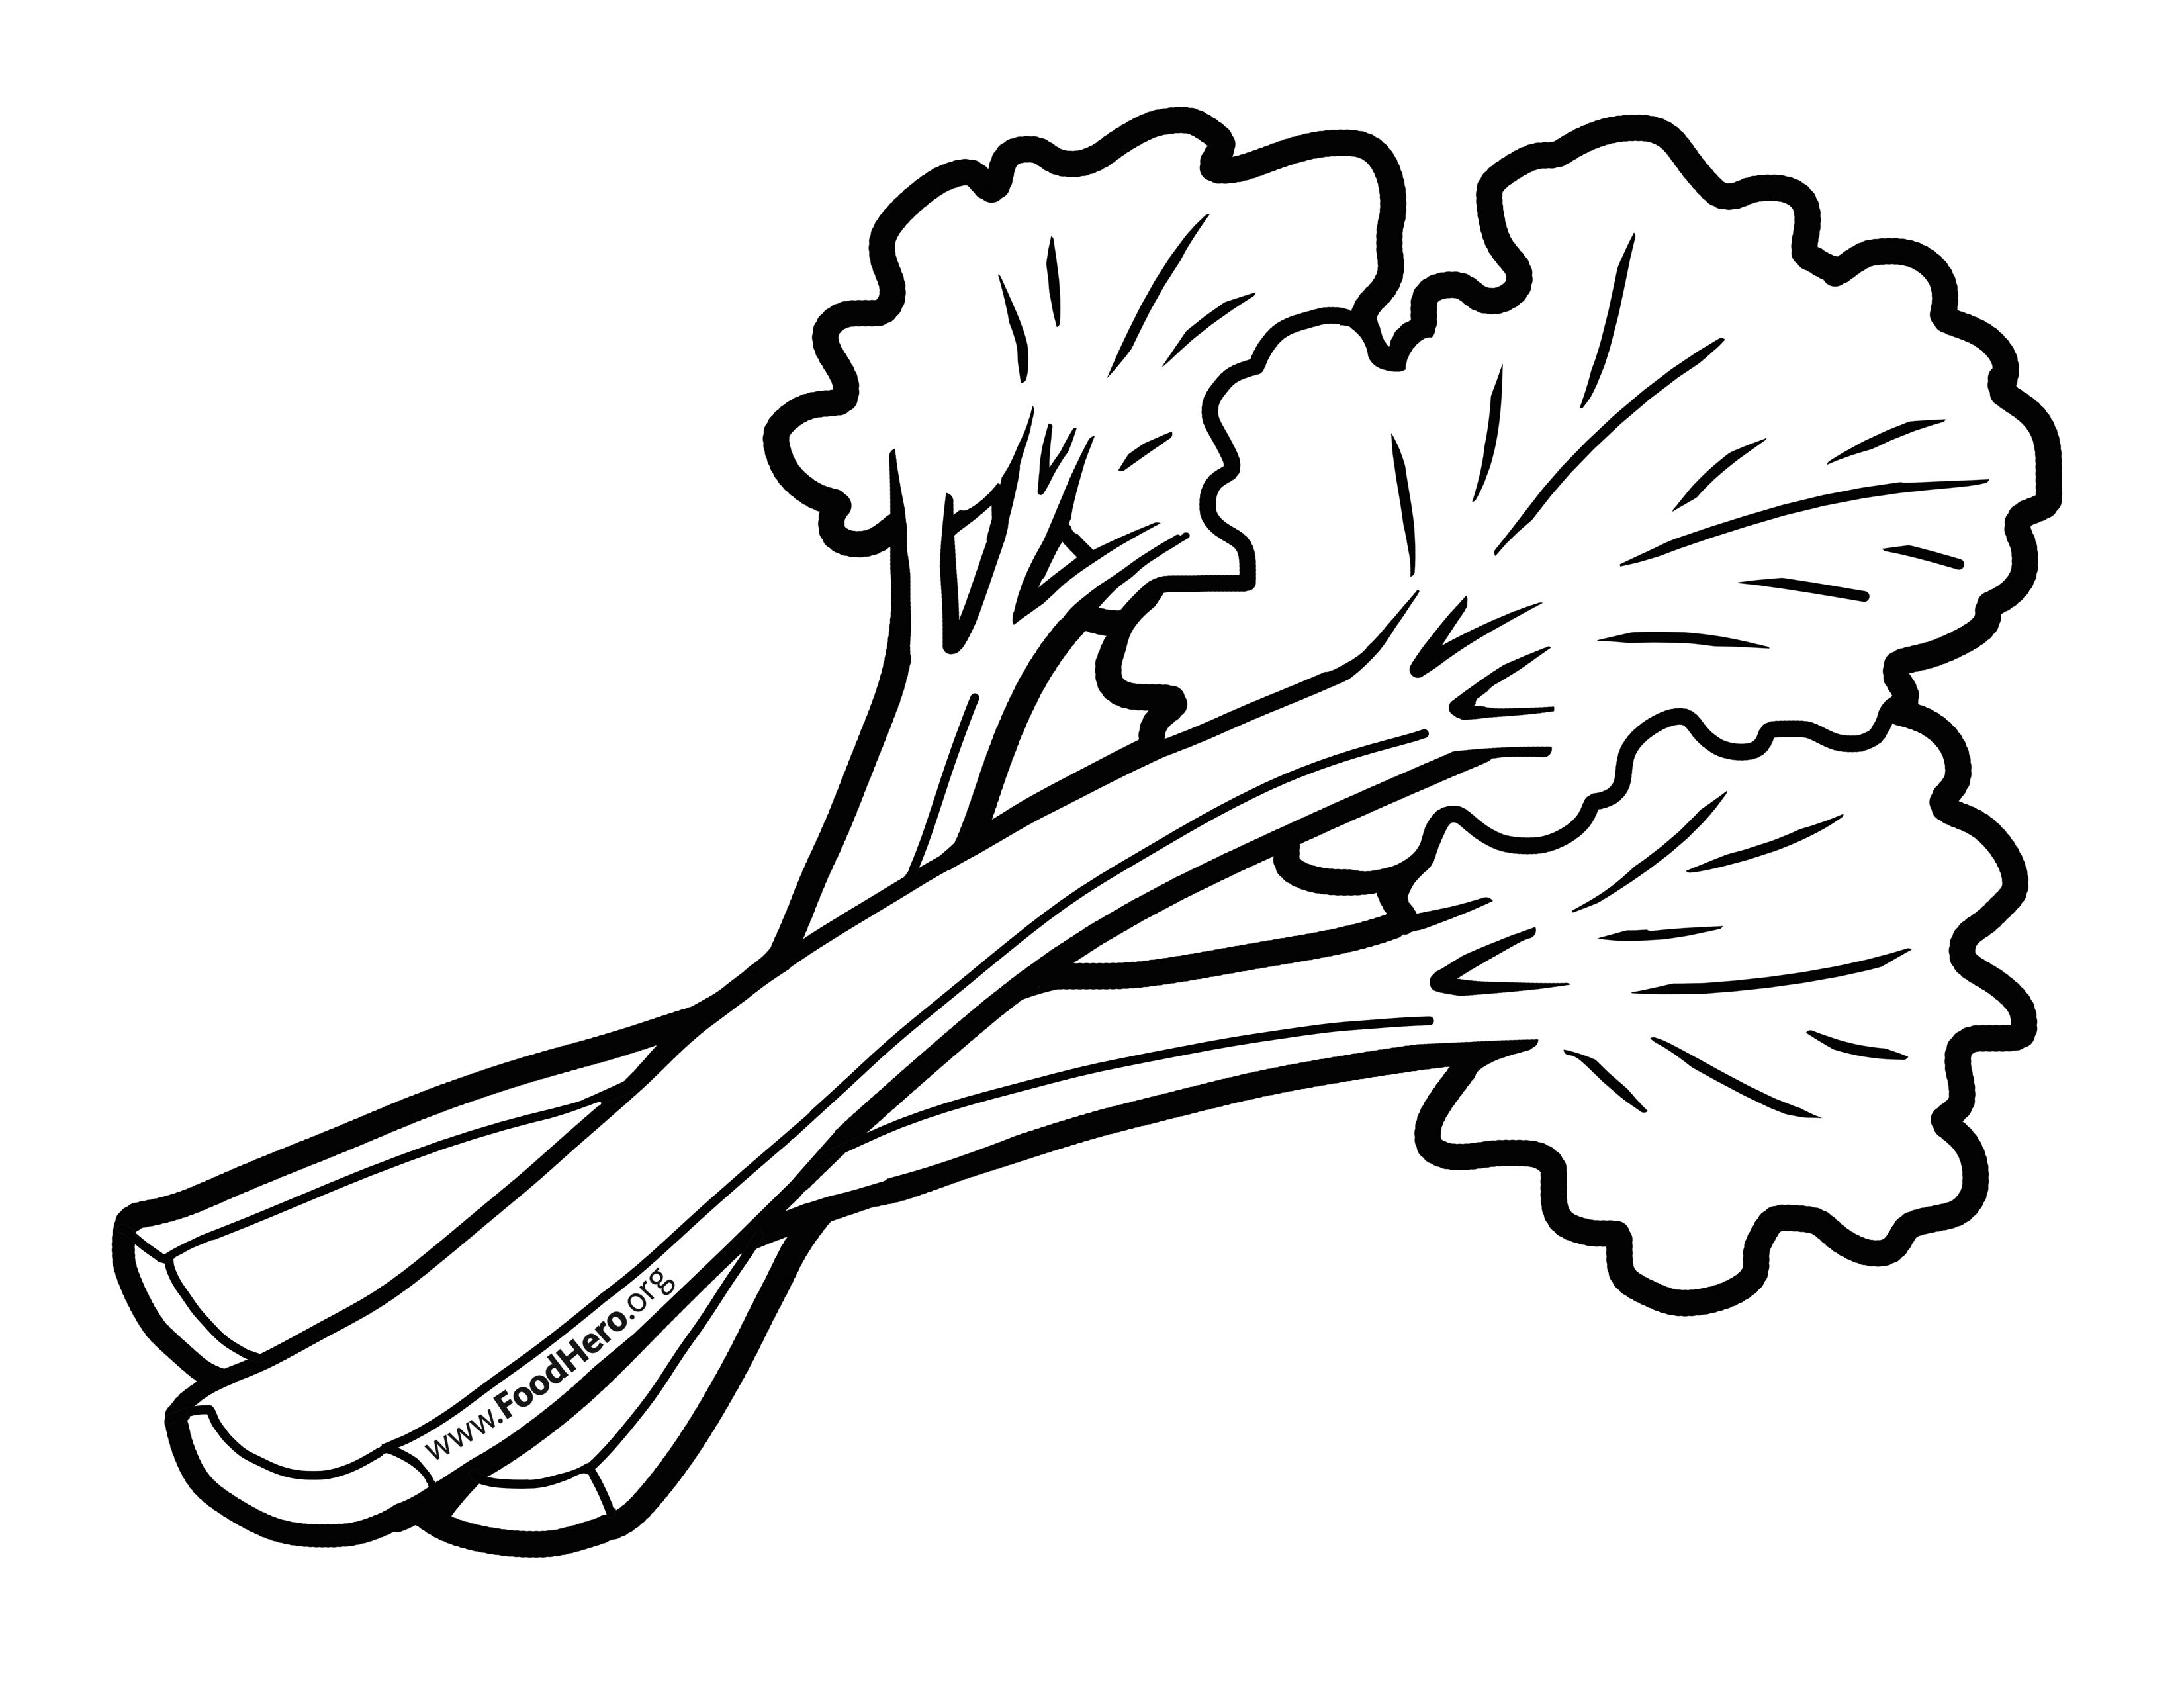 rhubarb coloring pages - photo#5